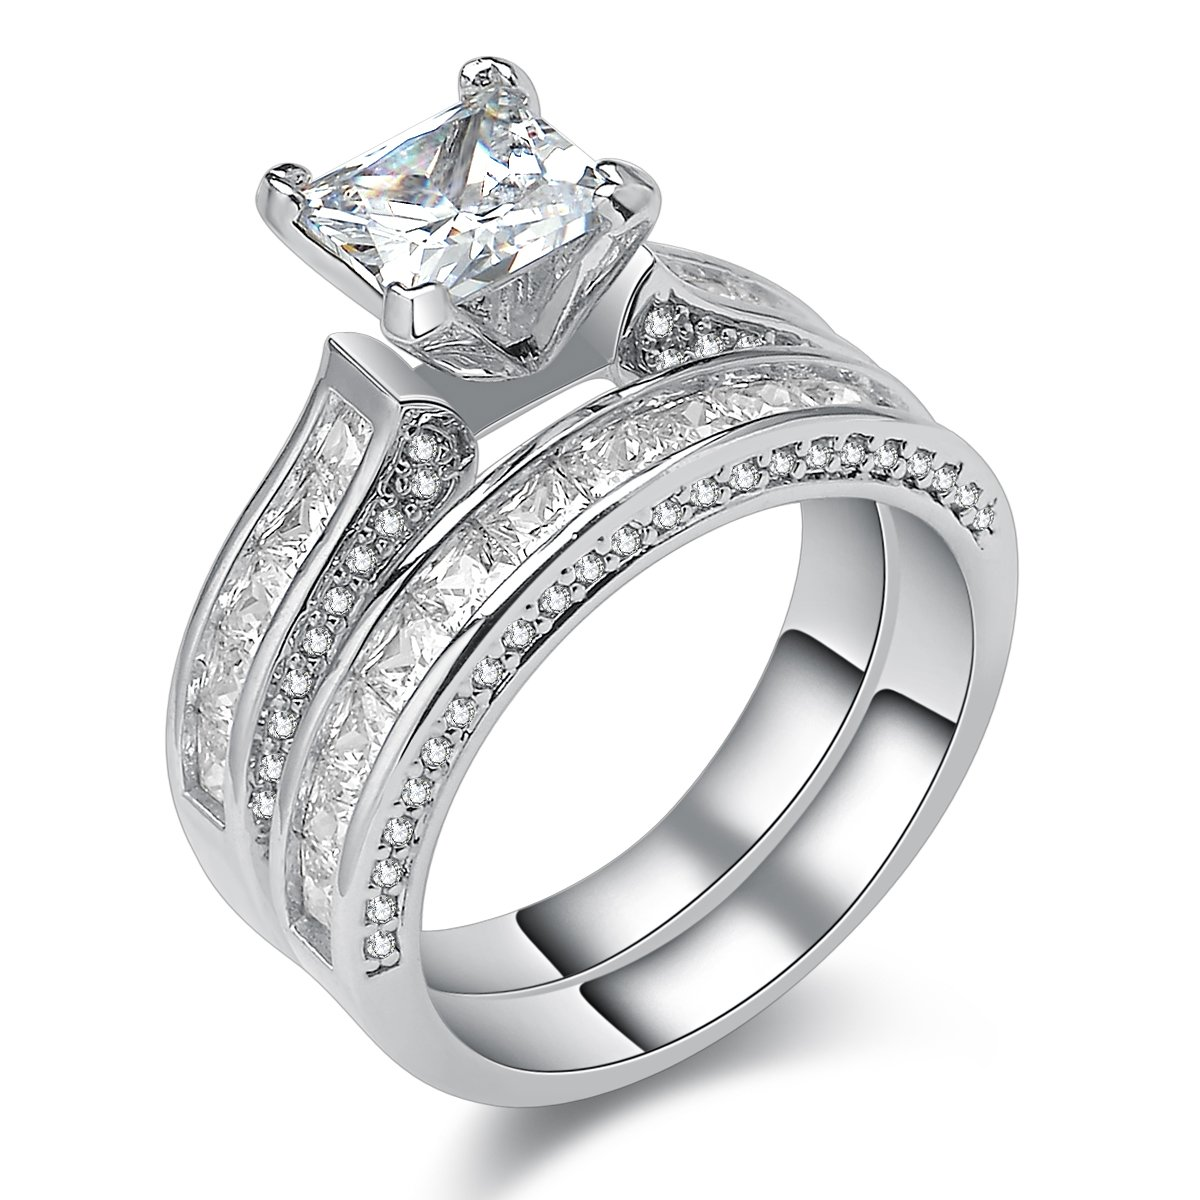 Newshe Jewellery Princess White Cz 925 Sterling Silver Wedding Band Engagement Ring Sets Size 5-10 JR4619_SS